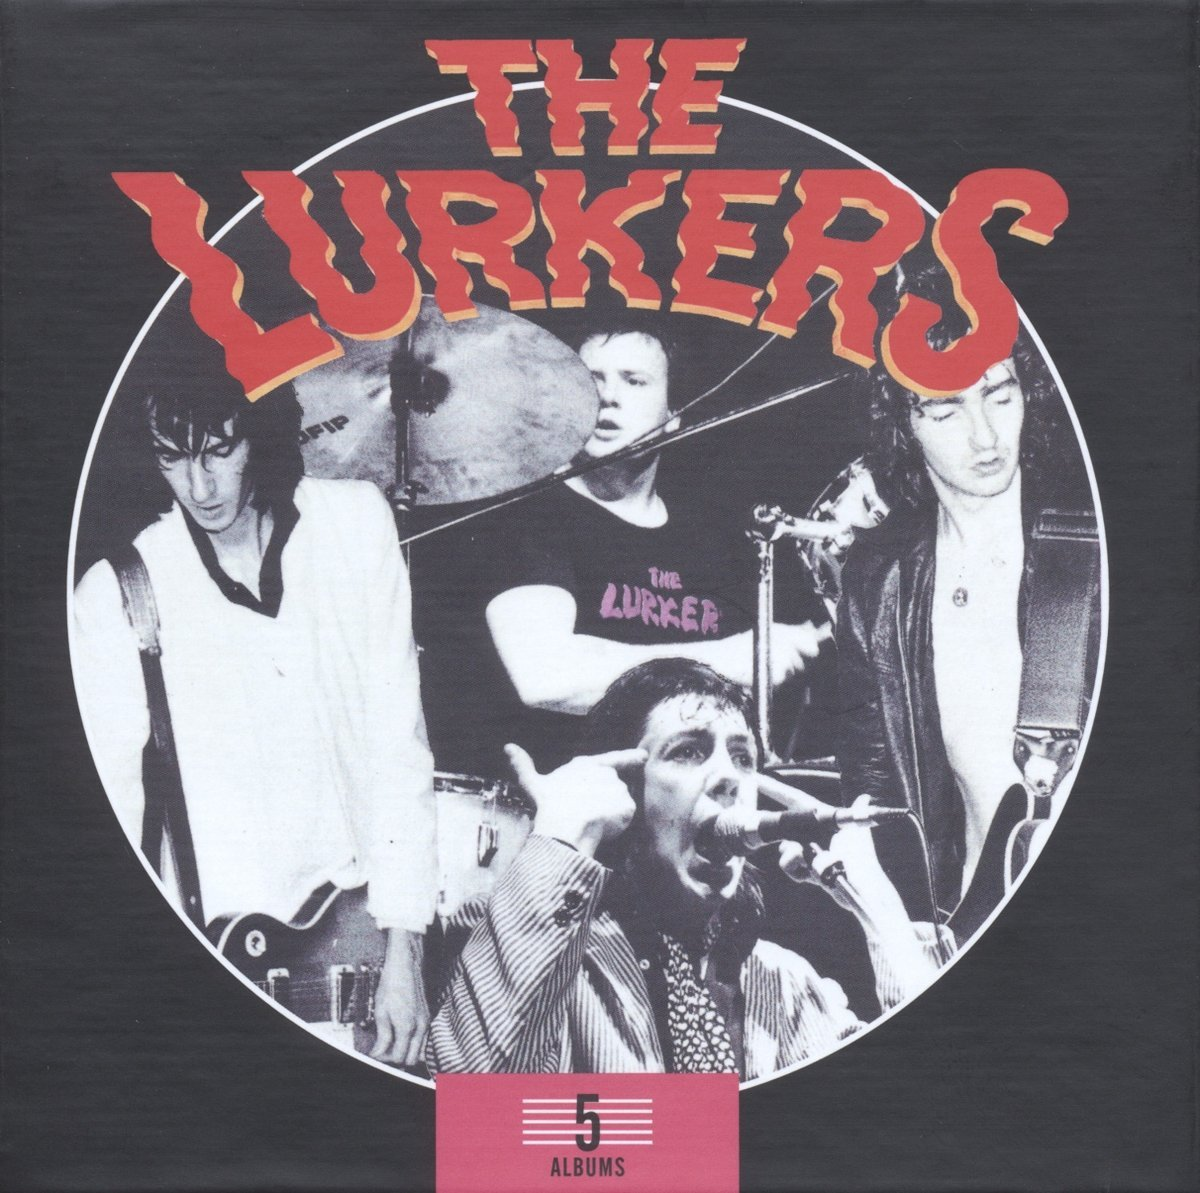 The Lurkers